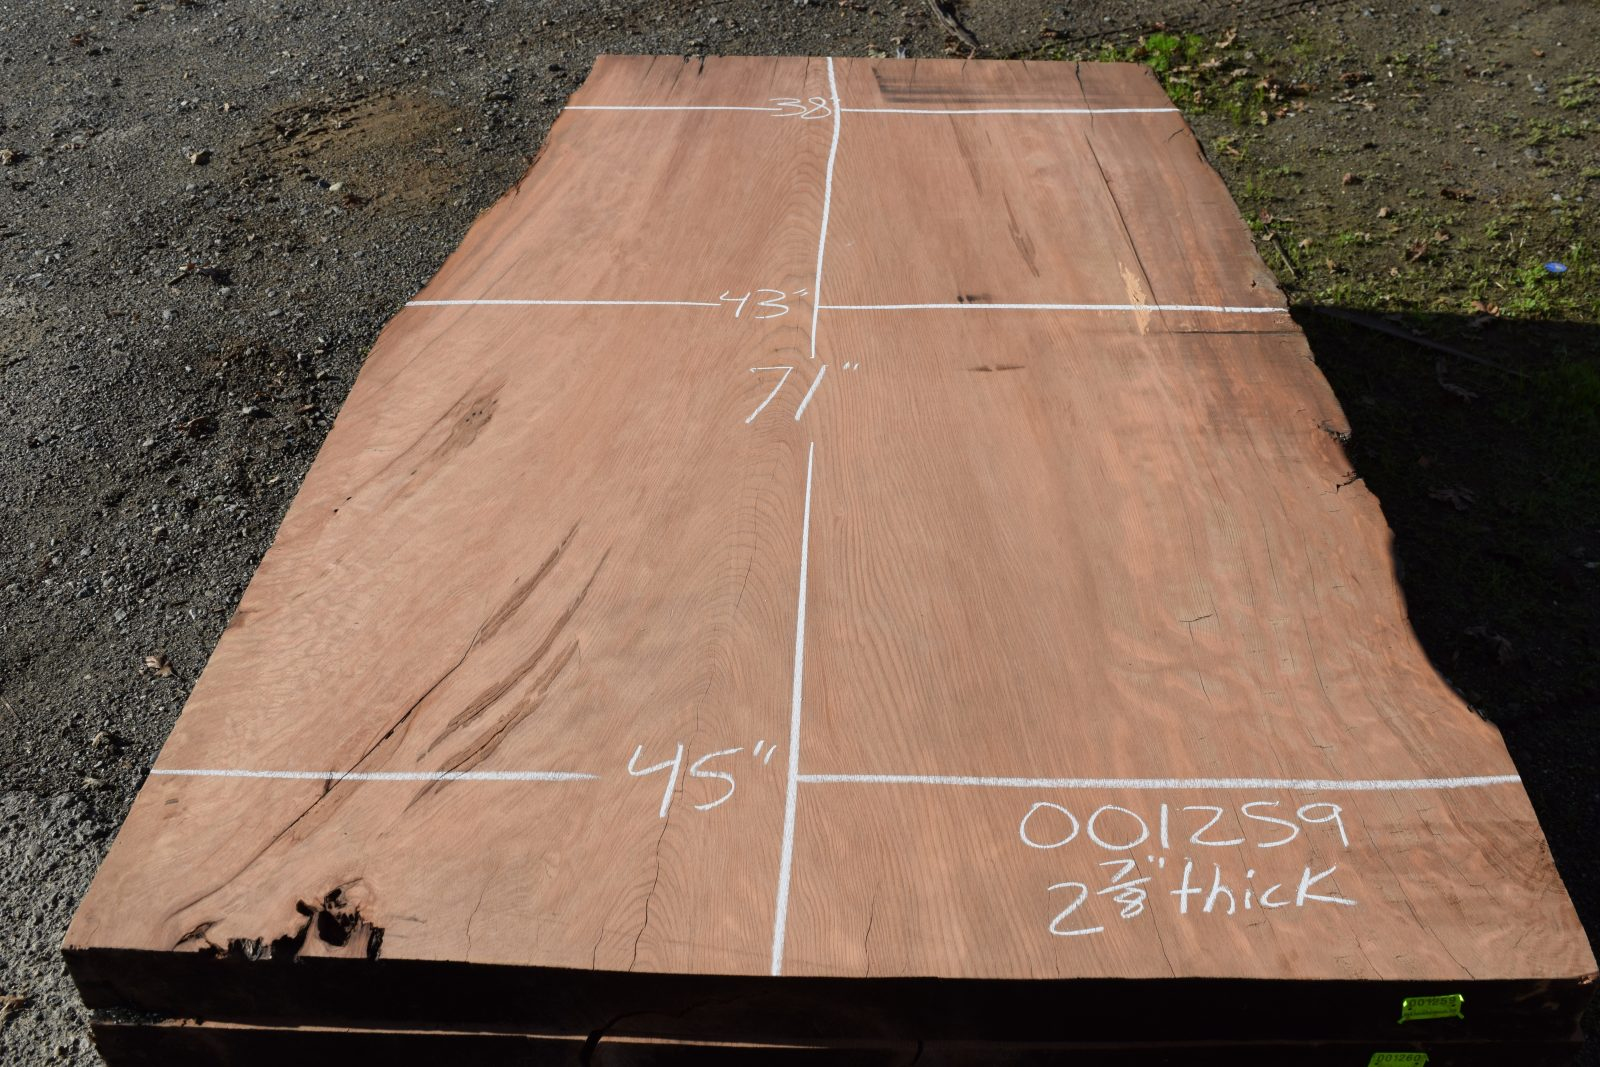 001259 Dry Surfaced Old Growth Redwood Slab 71 Quot X45 Quot 38 Quot X2